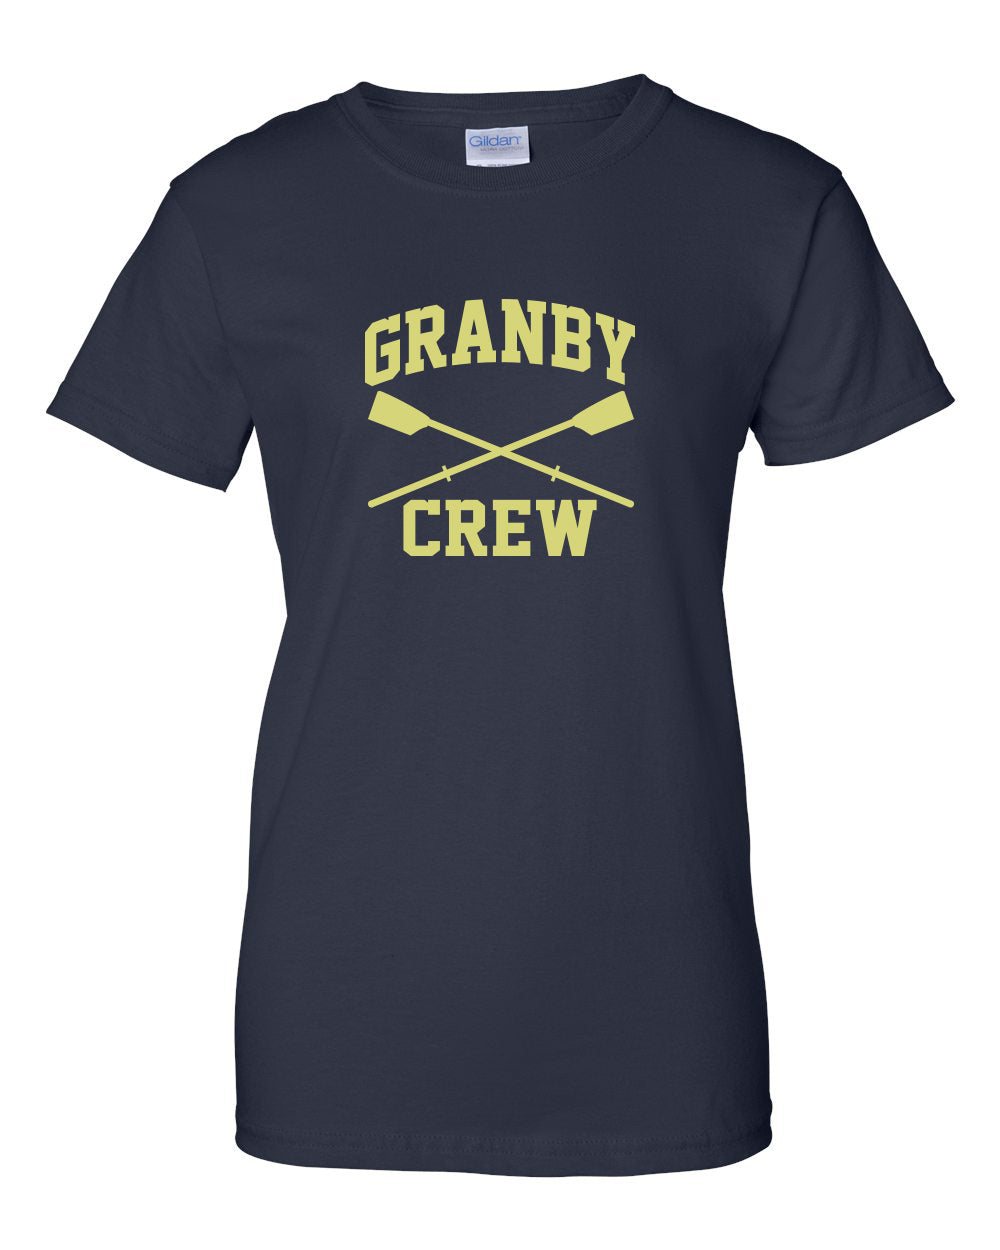 100% Cotton Granby Crew Women's Team Spirit T-Shirt